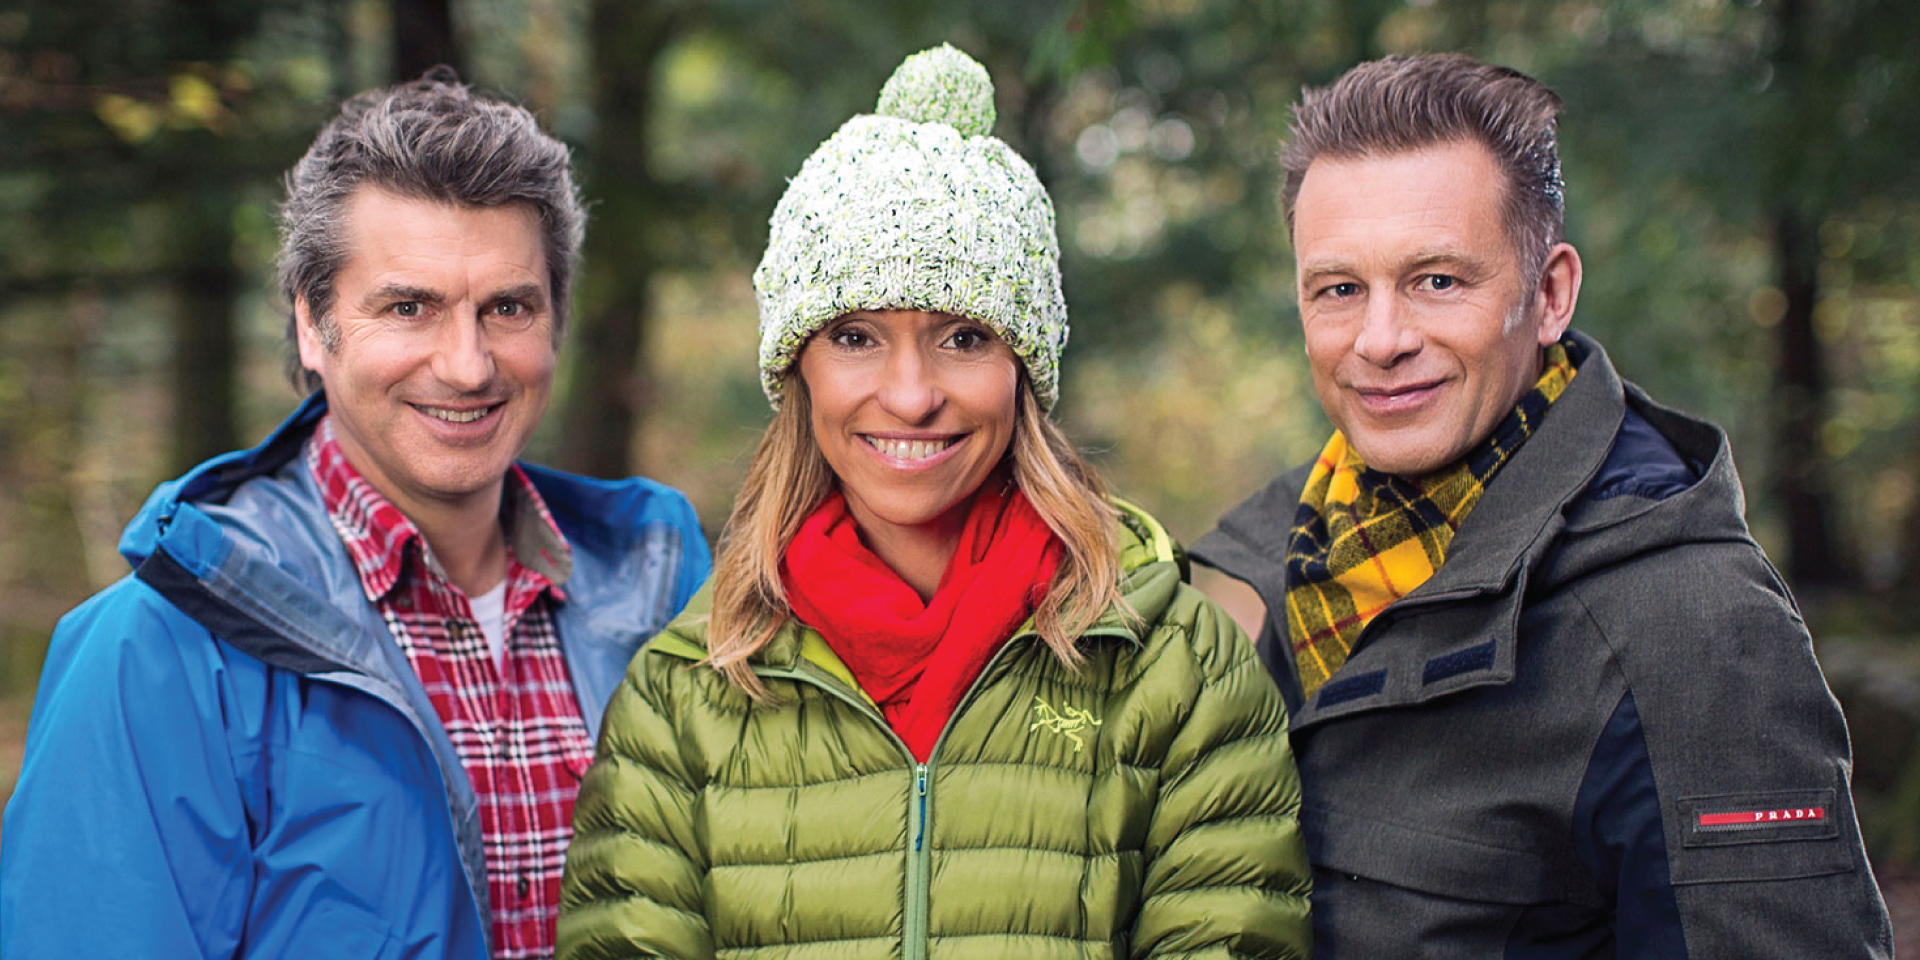 B009-2066-Winterwatch-case-study-Wide-6.jpg